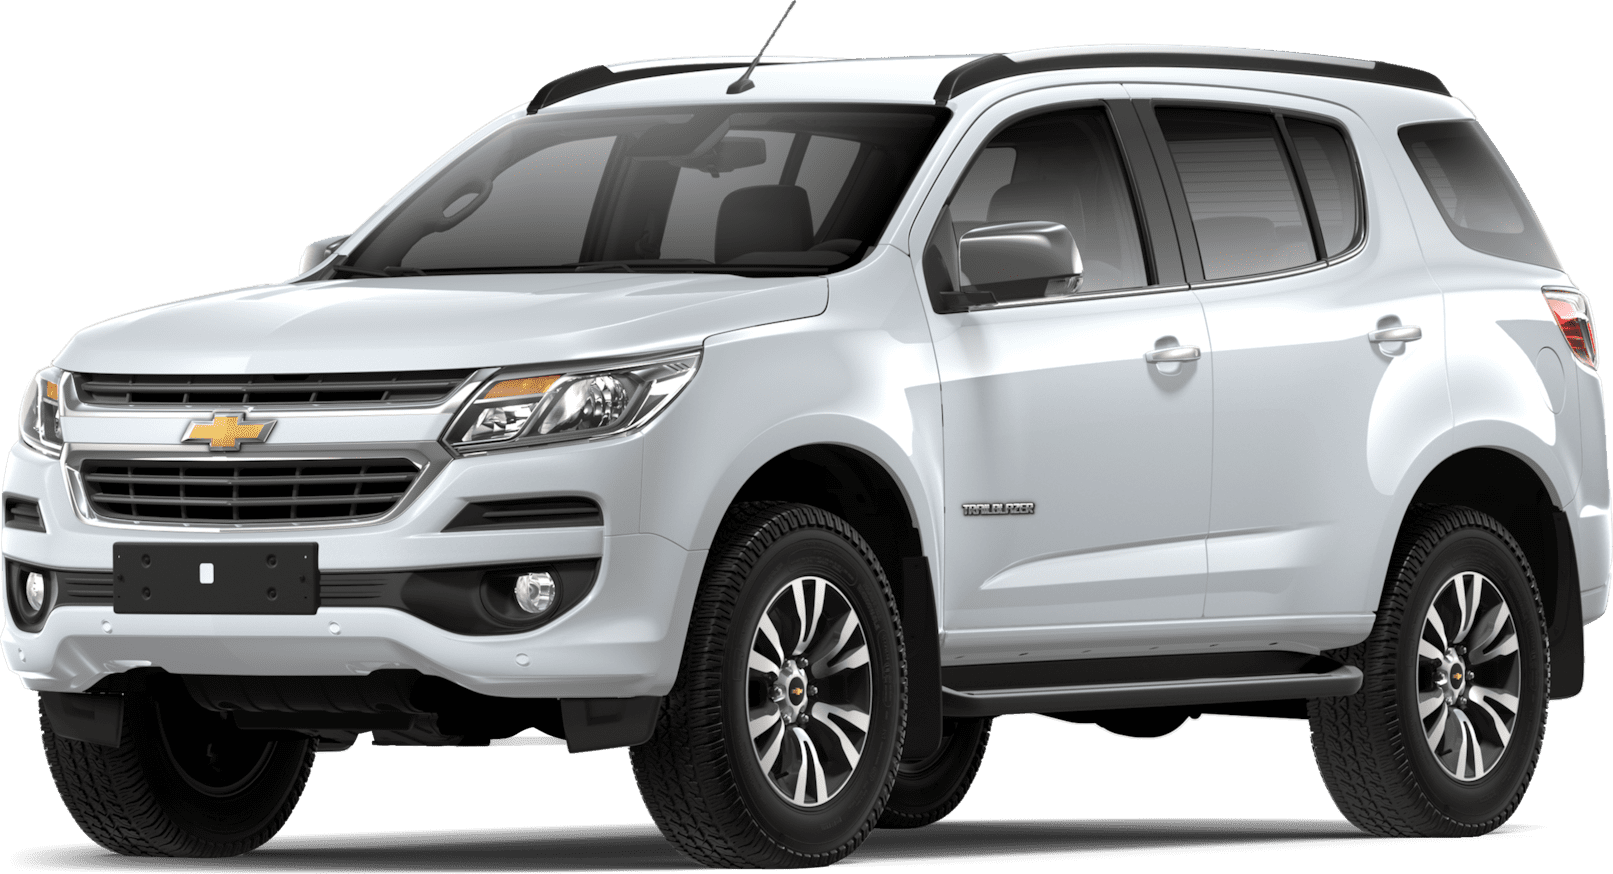 2019 Chevrolet Trailblazer LT Z71 Price in UAE, Specs ...